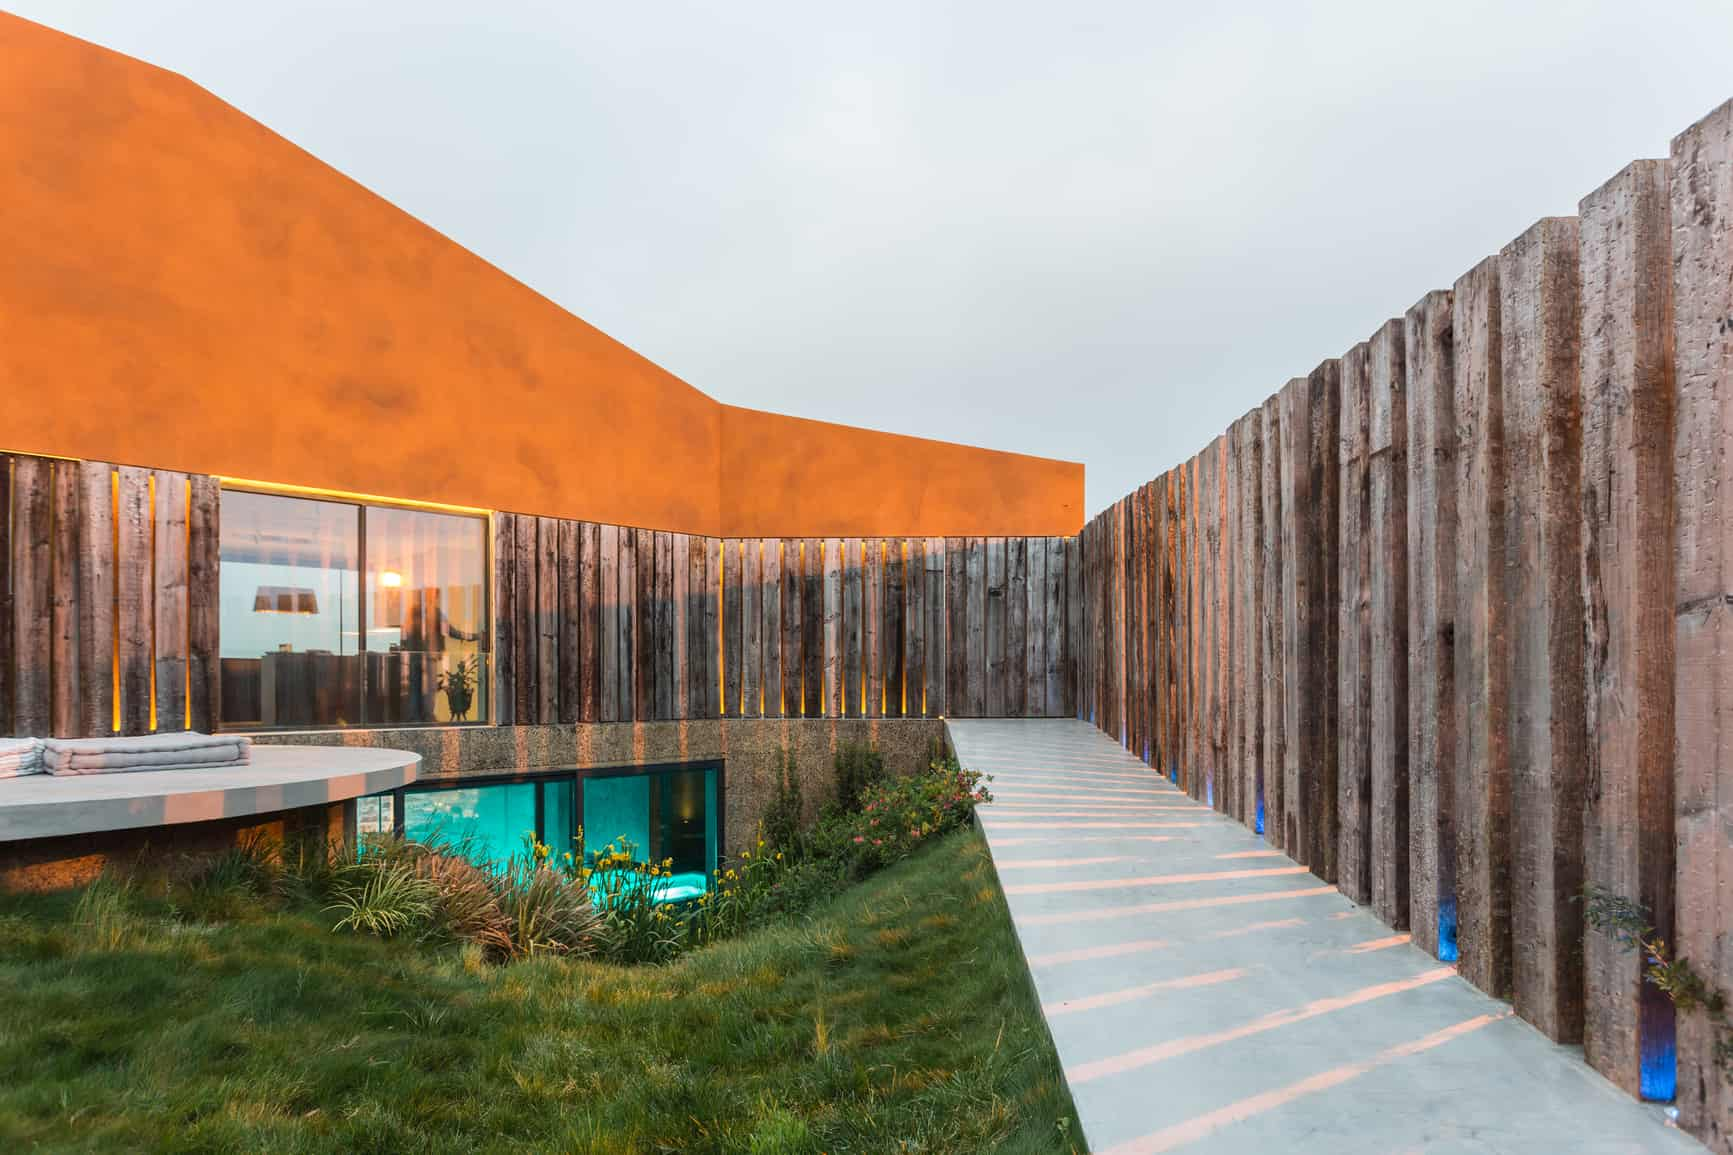 Modern architecture. Orange building. Wooden cladding. Grassy courtyard. R&D Tax credits. The challenge for architects.